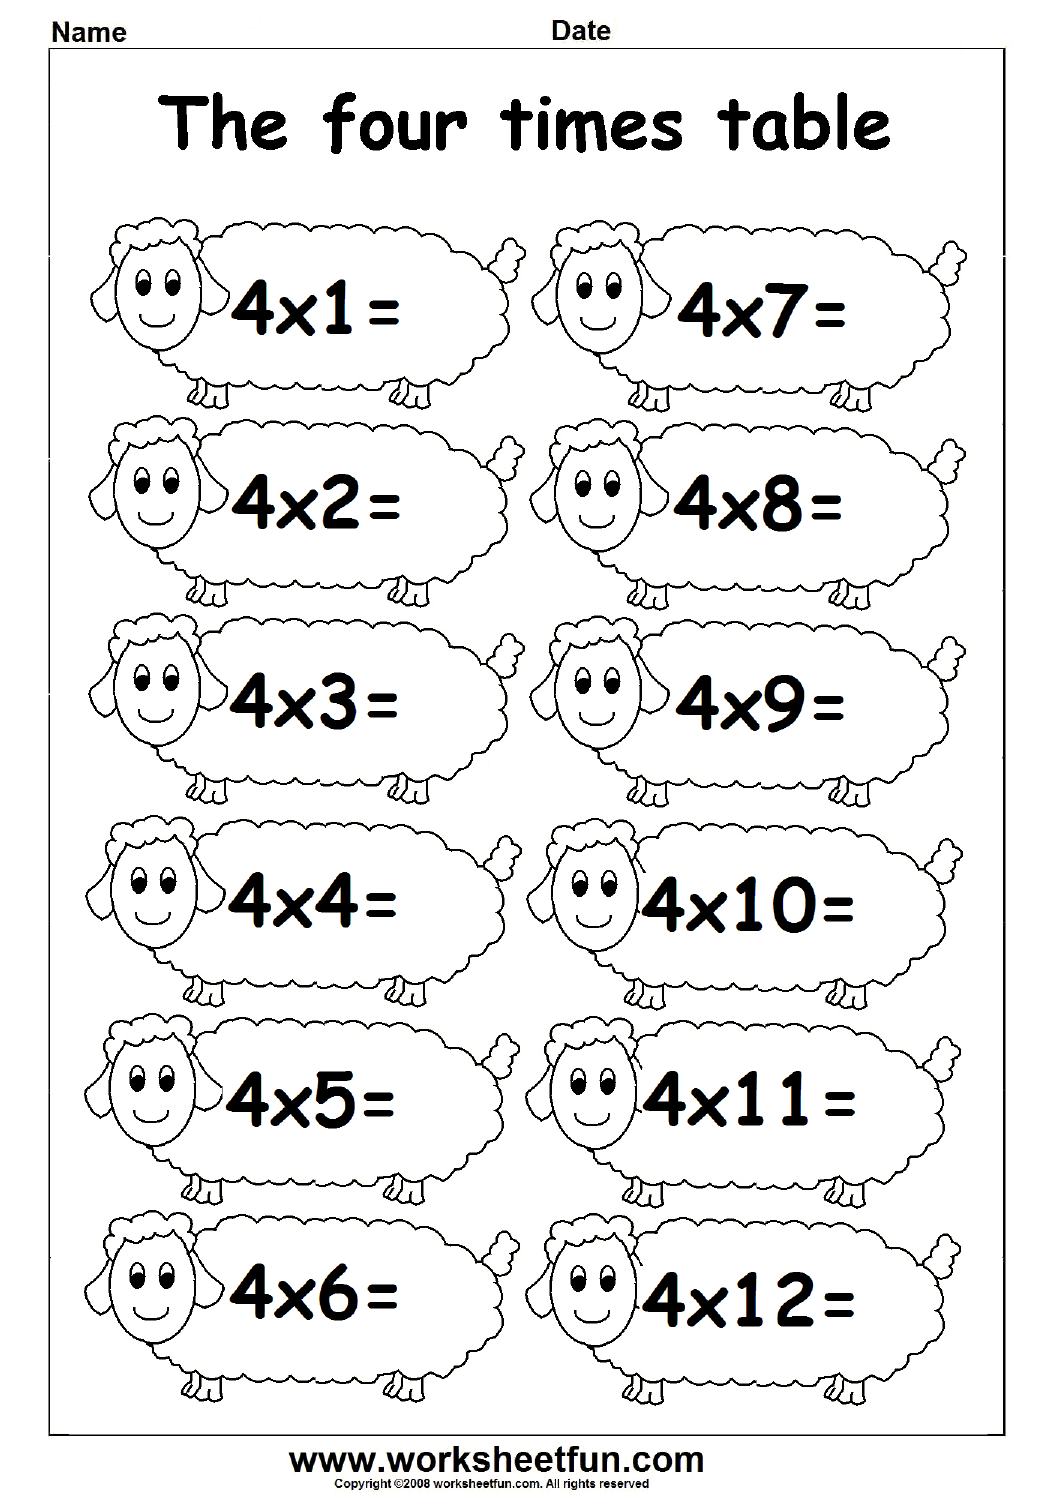 Image Result For Multiplication Table Worksheets Of Table